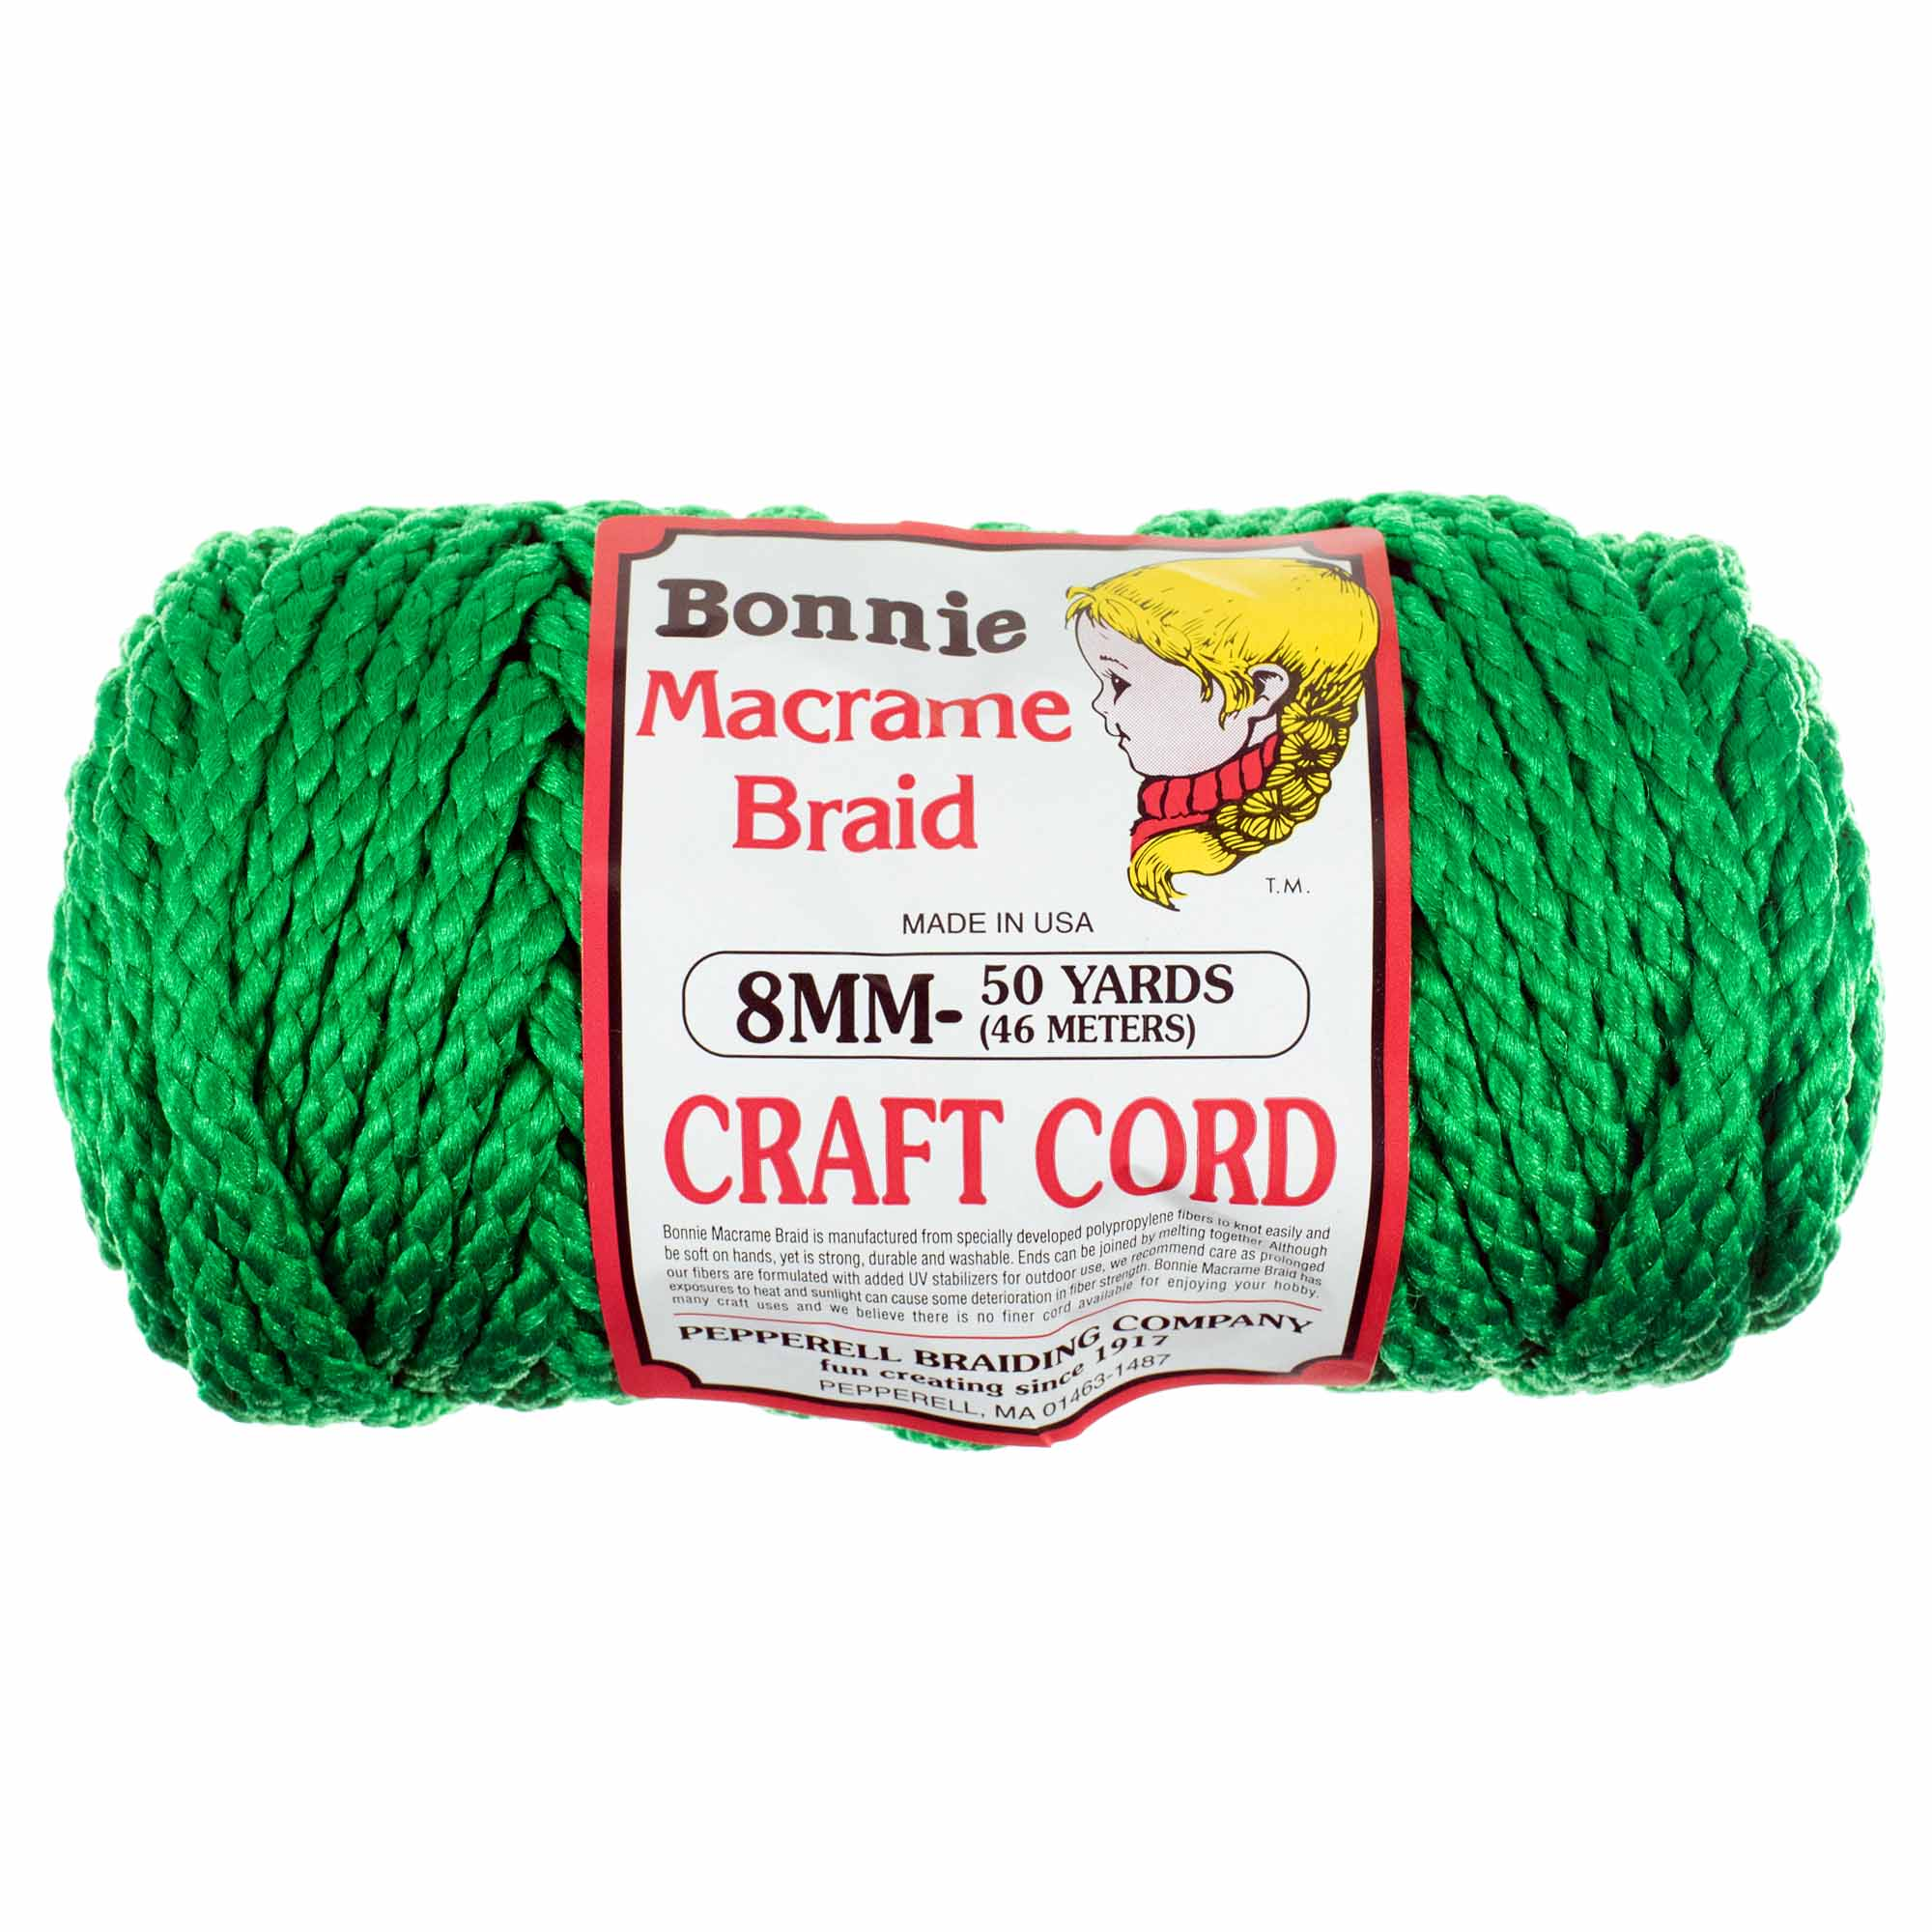 8mm Bonnie Crafting Cord - Great for Macrame and Other Crafts - 50 Yard Skein